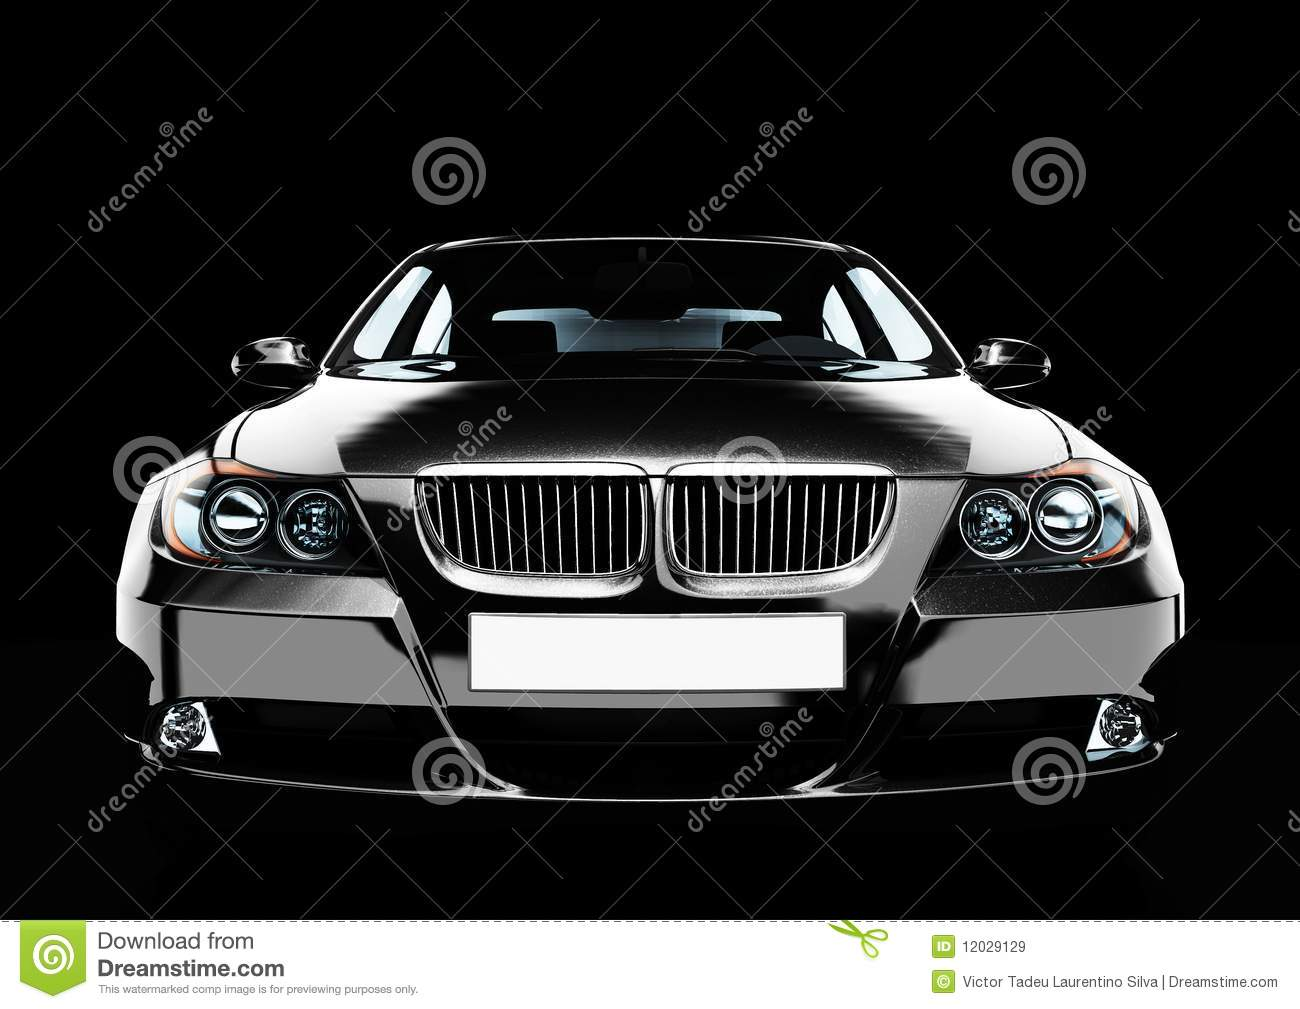 Top Front View Of A Luxury Sedan Car Stock Illustration